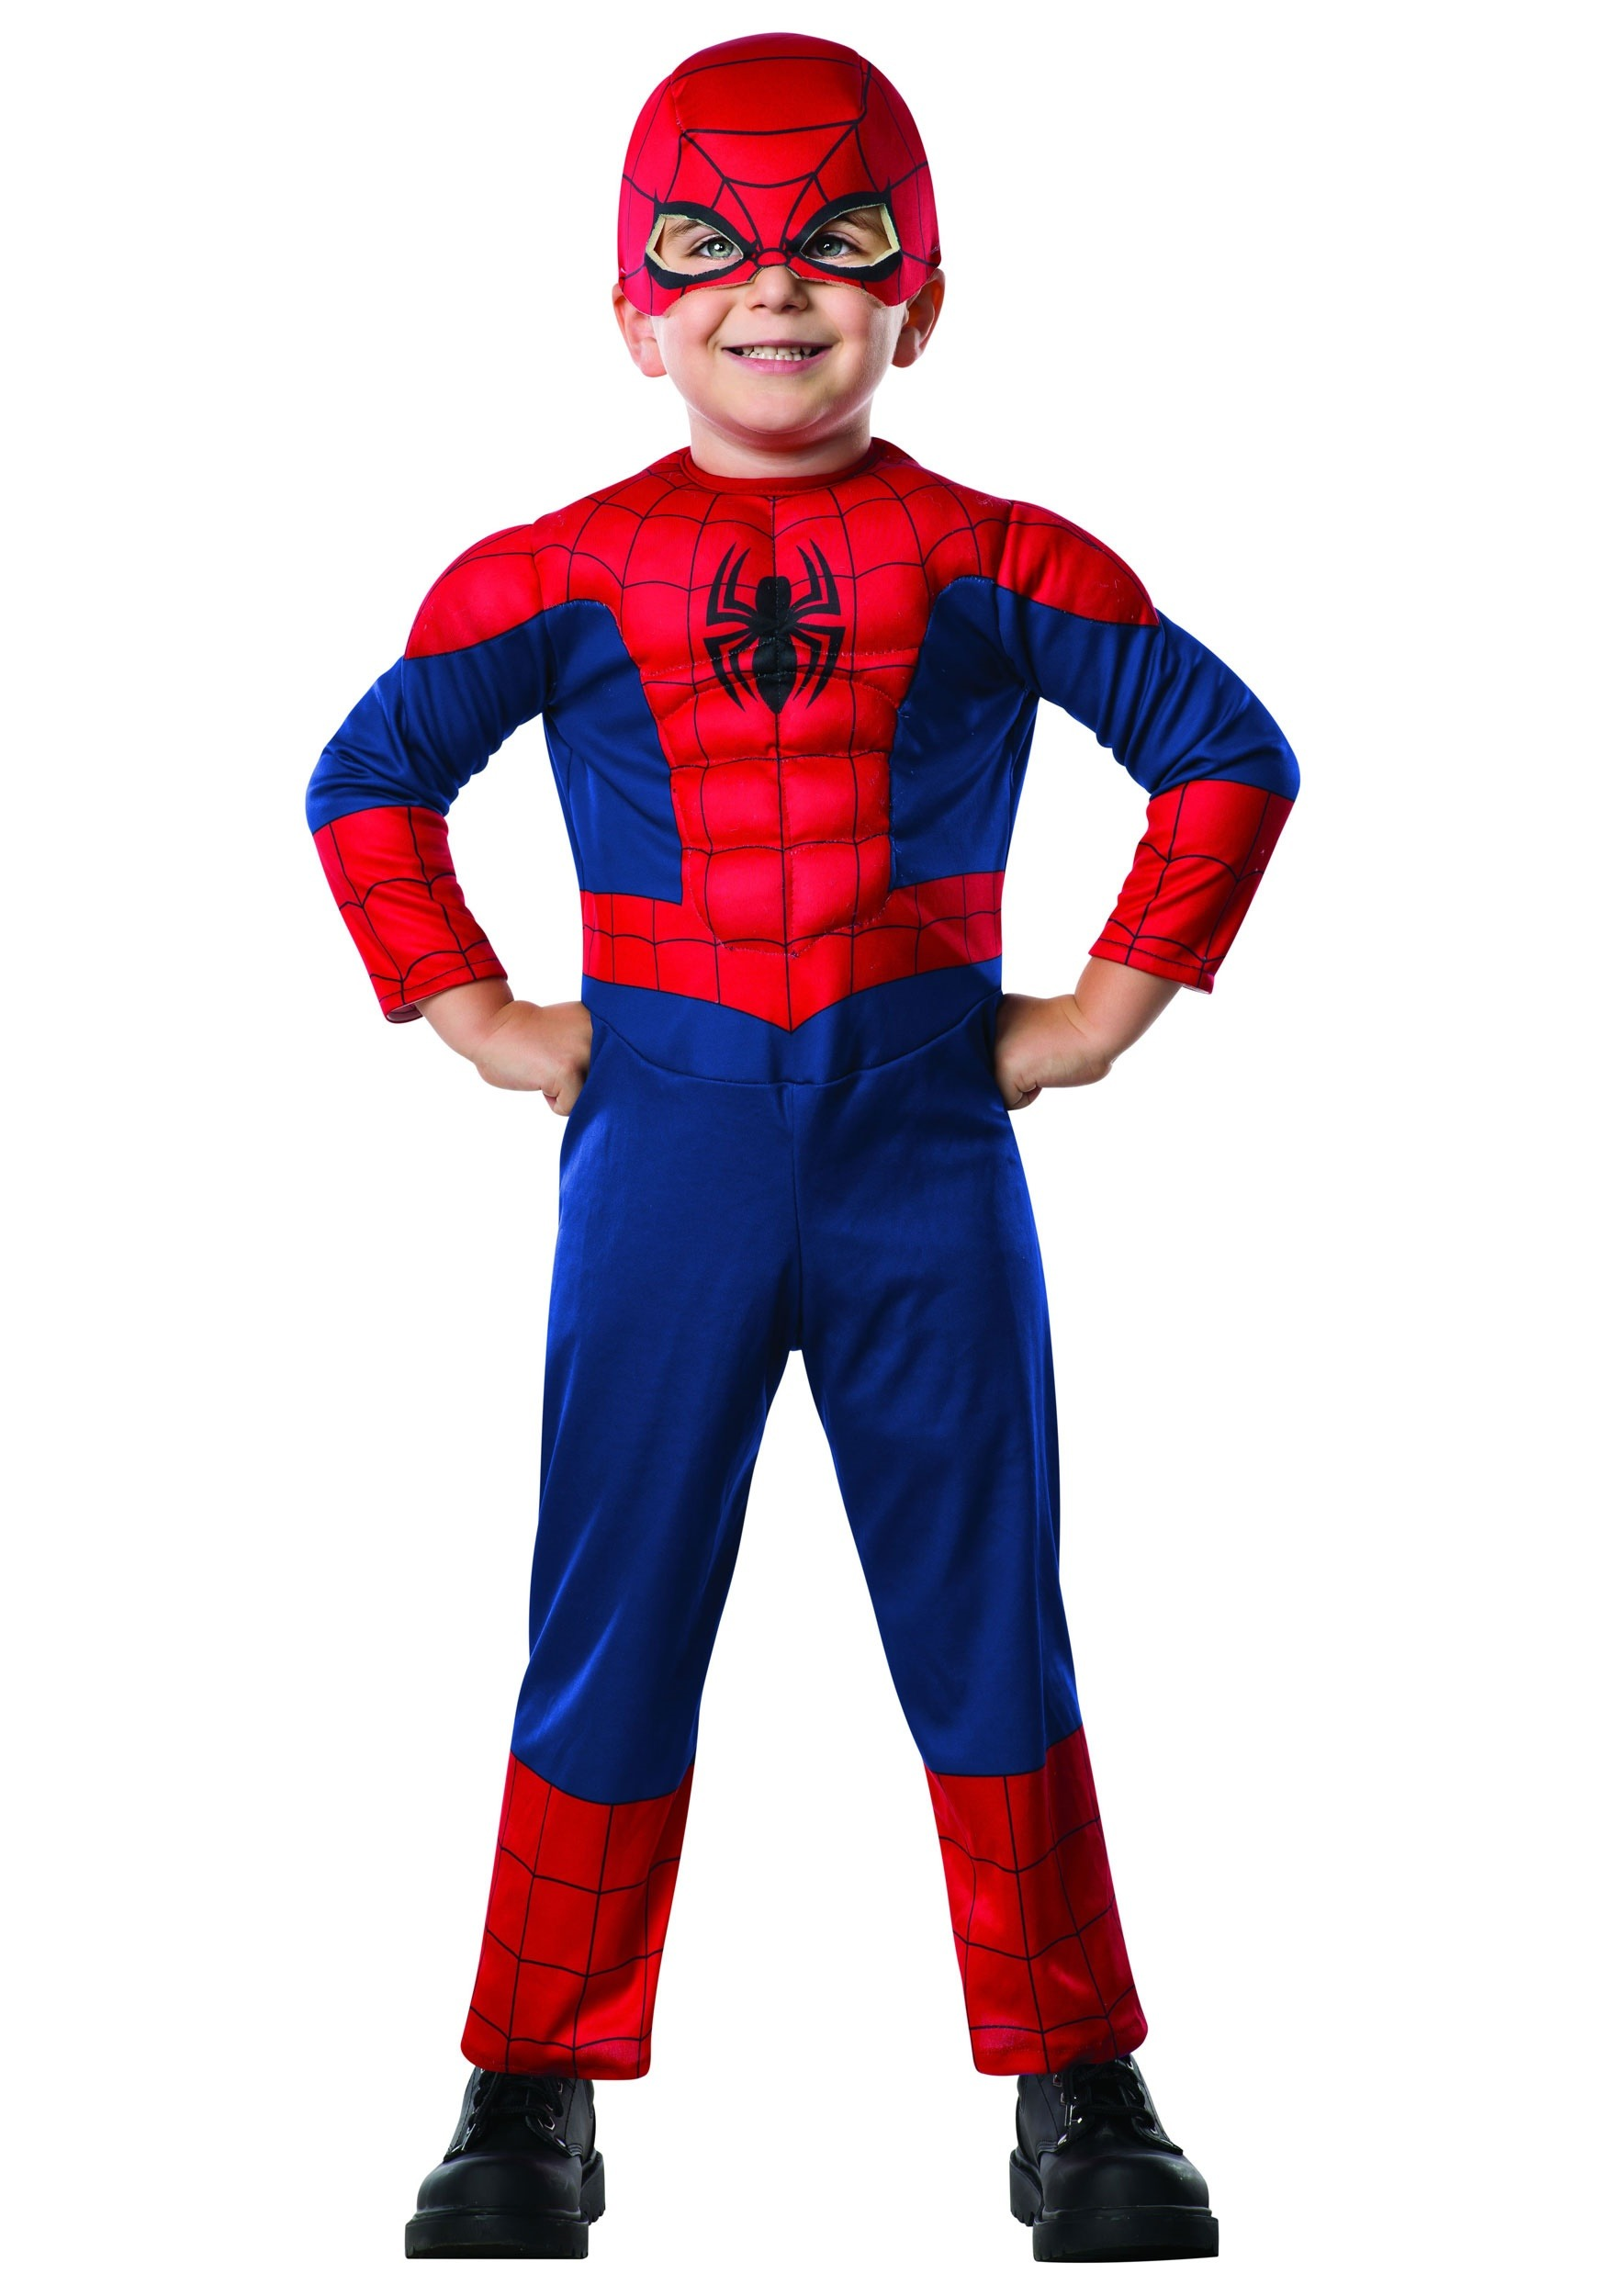 Spider-Man Toddler Costume  sc 1 st  Halloween Costumes : spiderman childs costume  - Germanpascual.Com